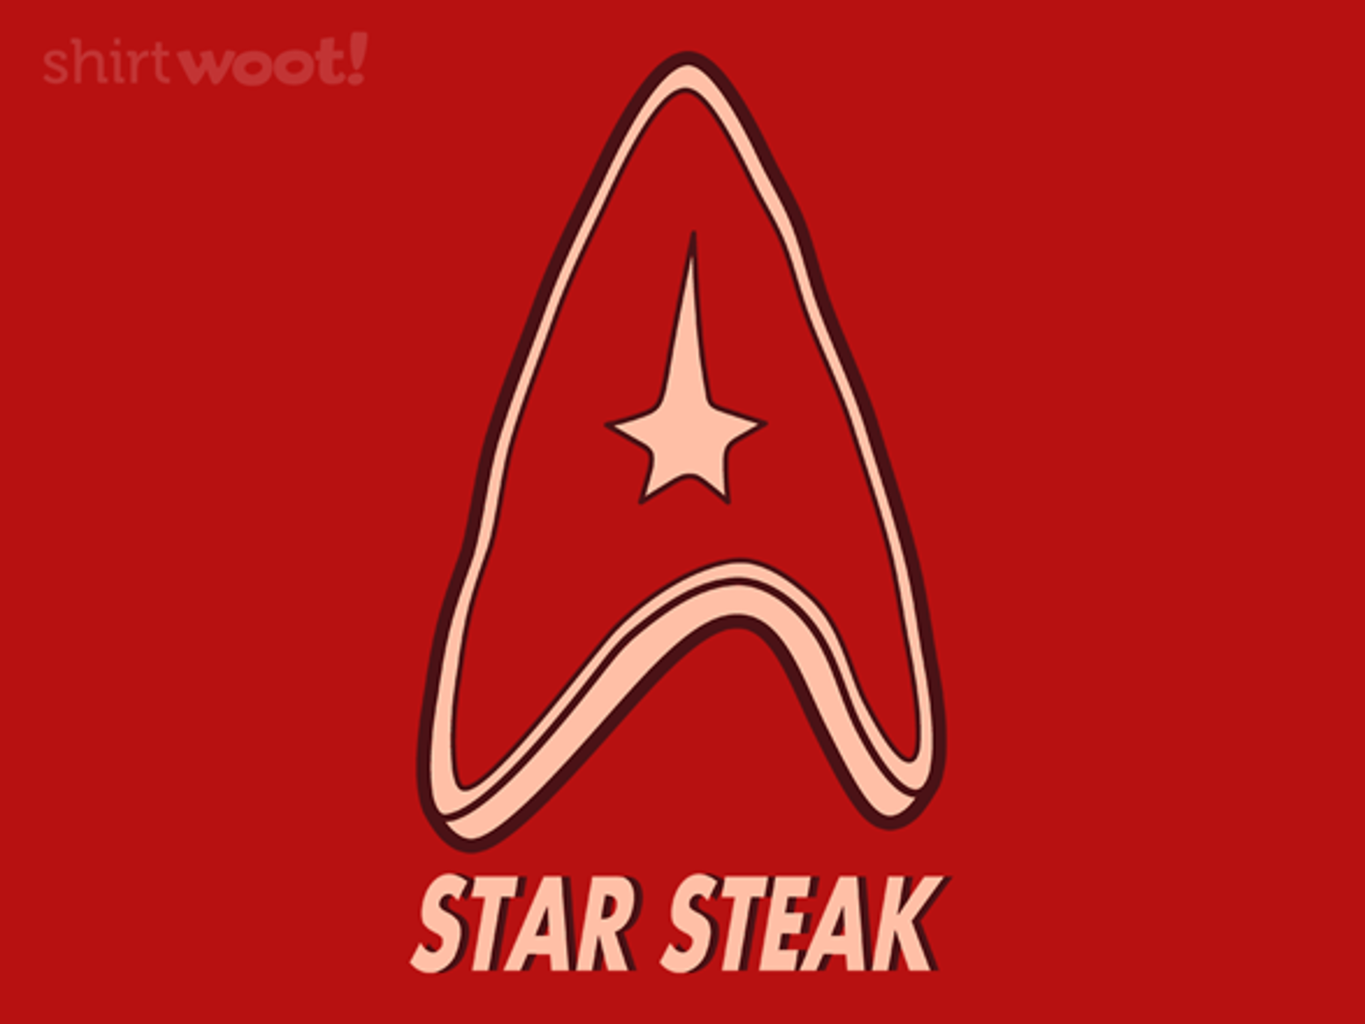 Woot!: Star Steak